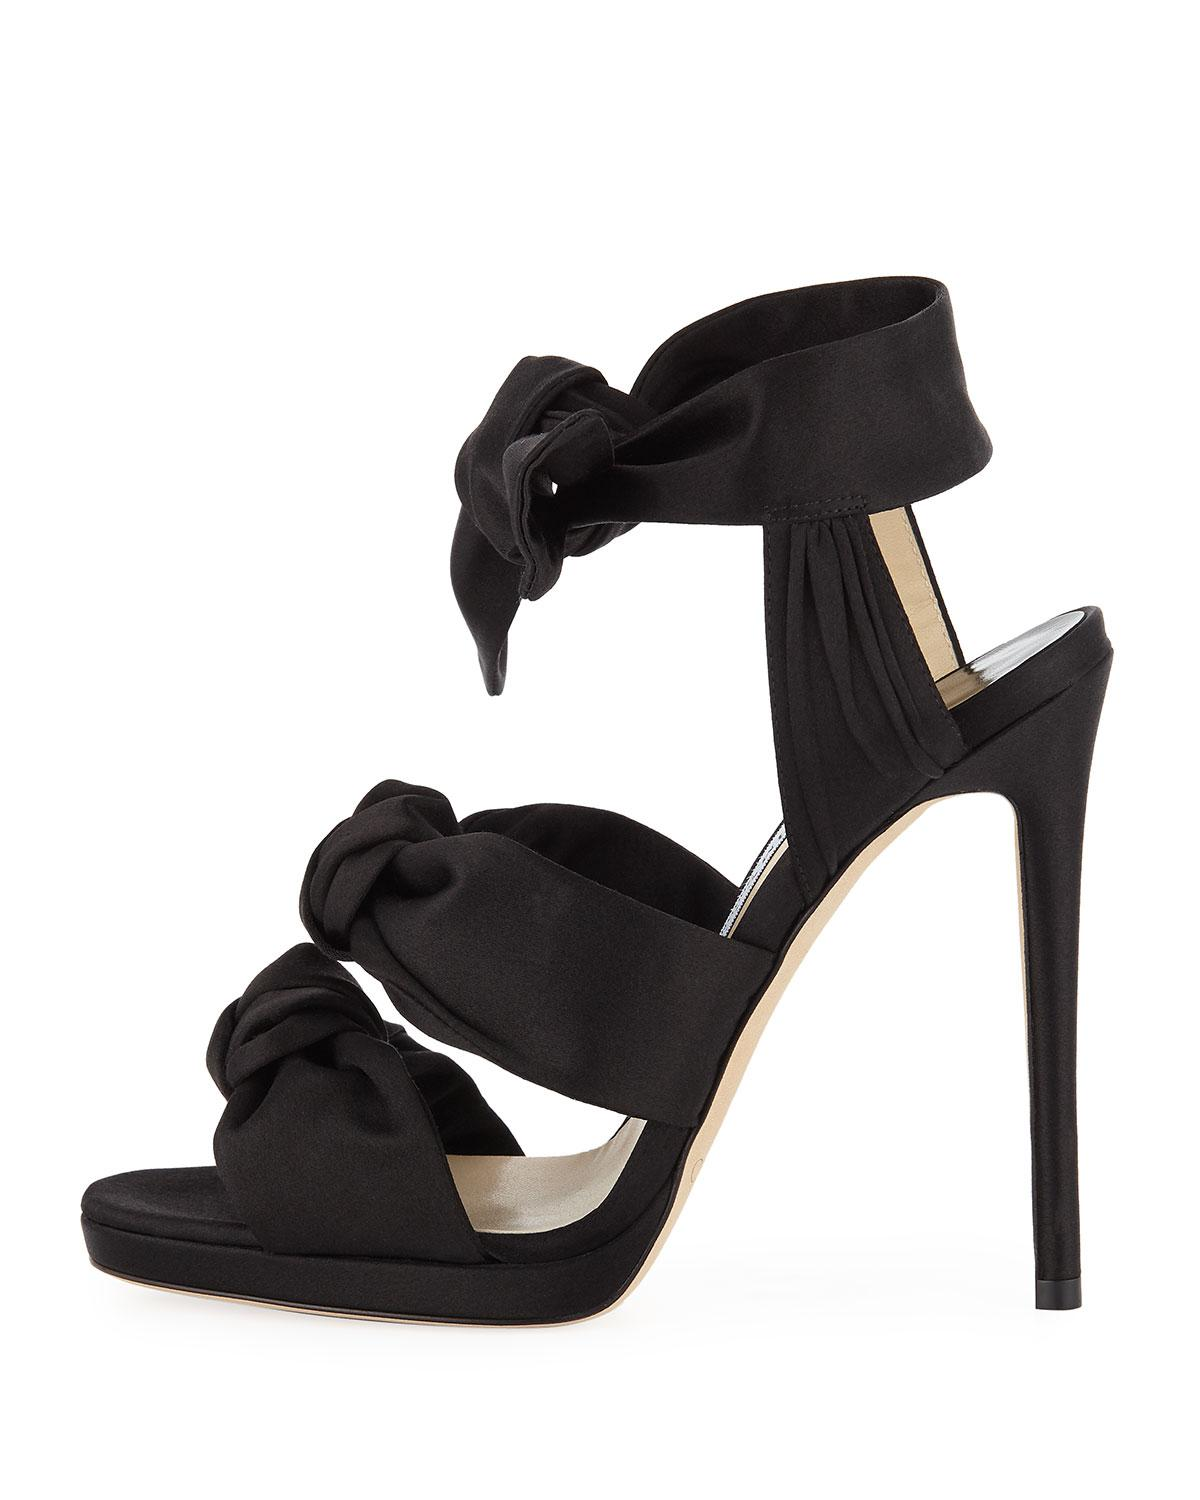 336520612f9a20 Lyst - Jimmy Choo Kris 120mm Knotted Satin Sandals in Black